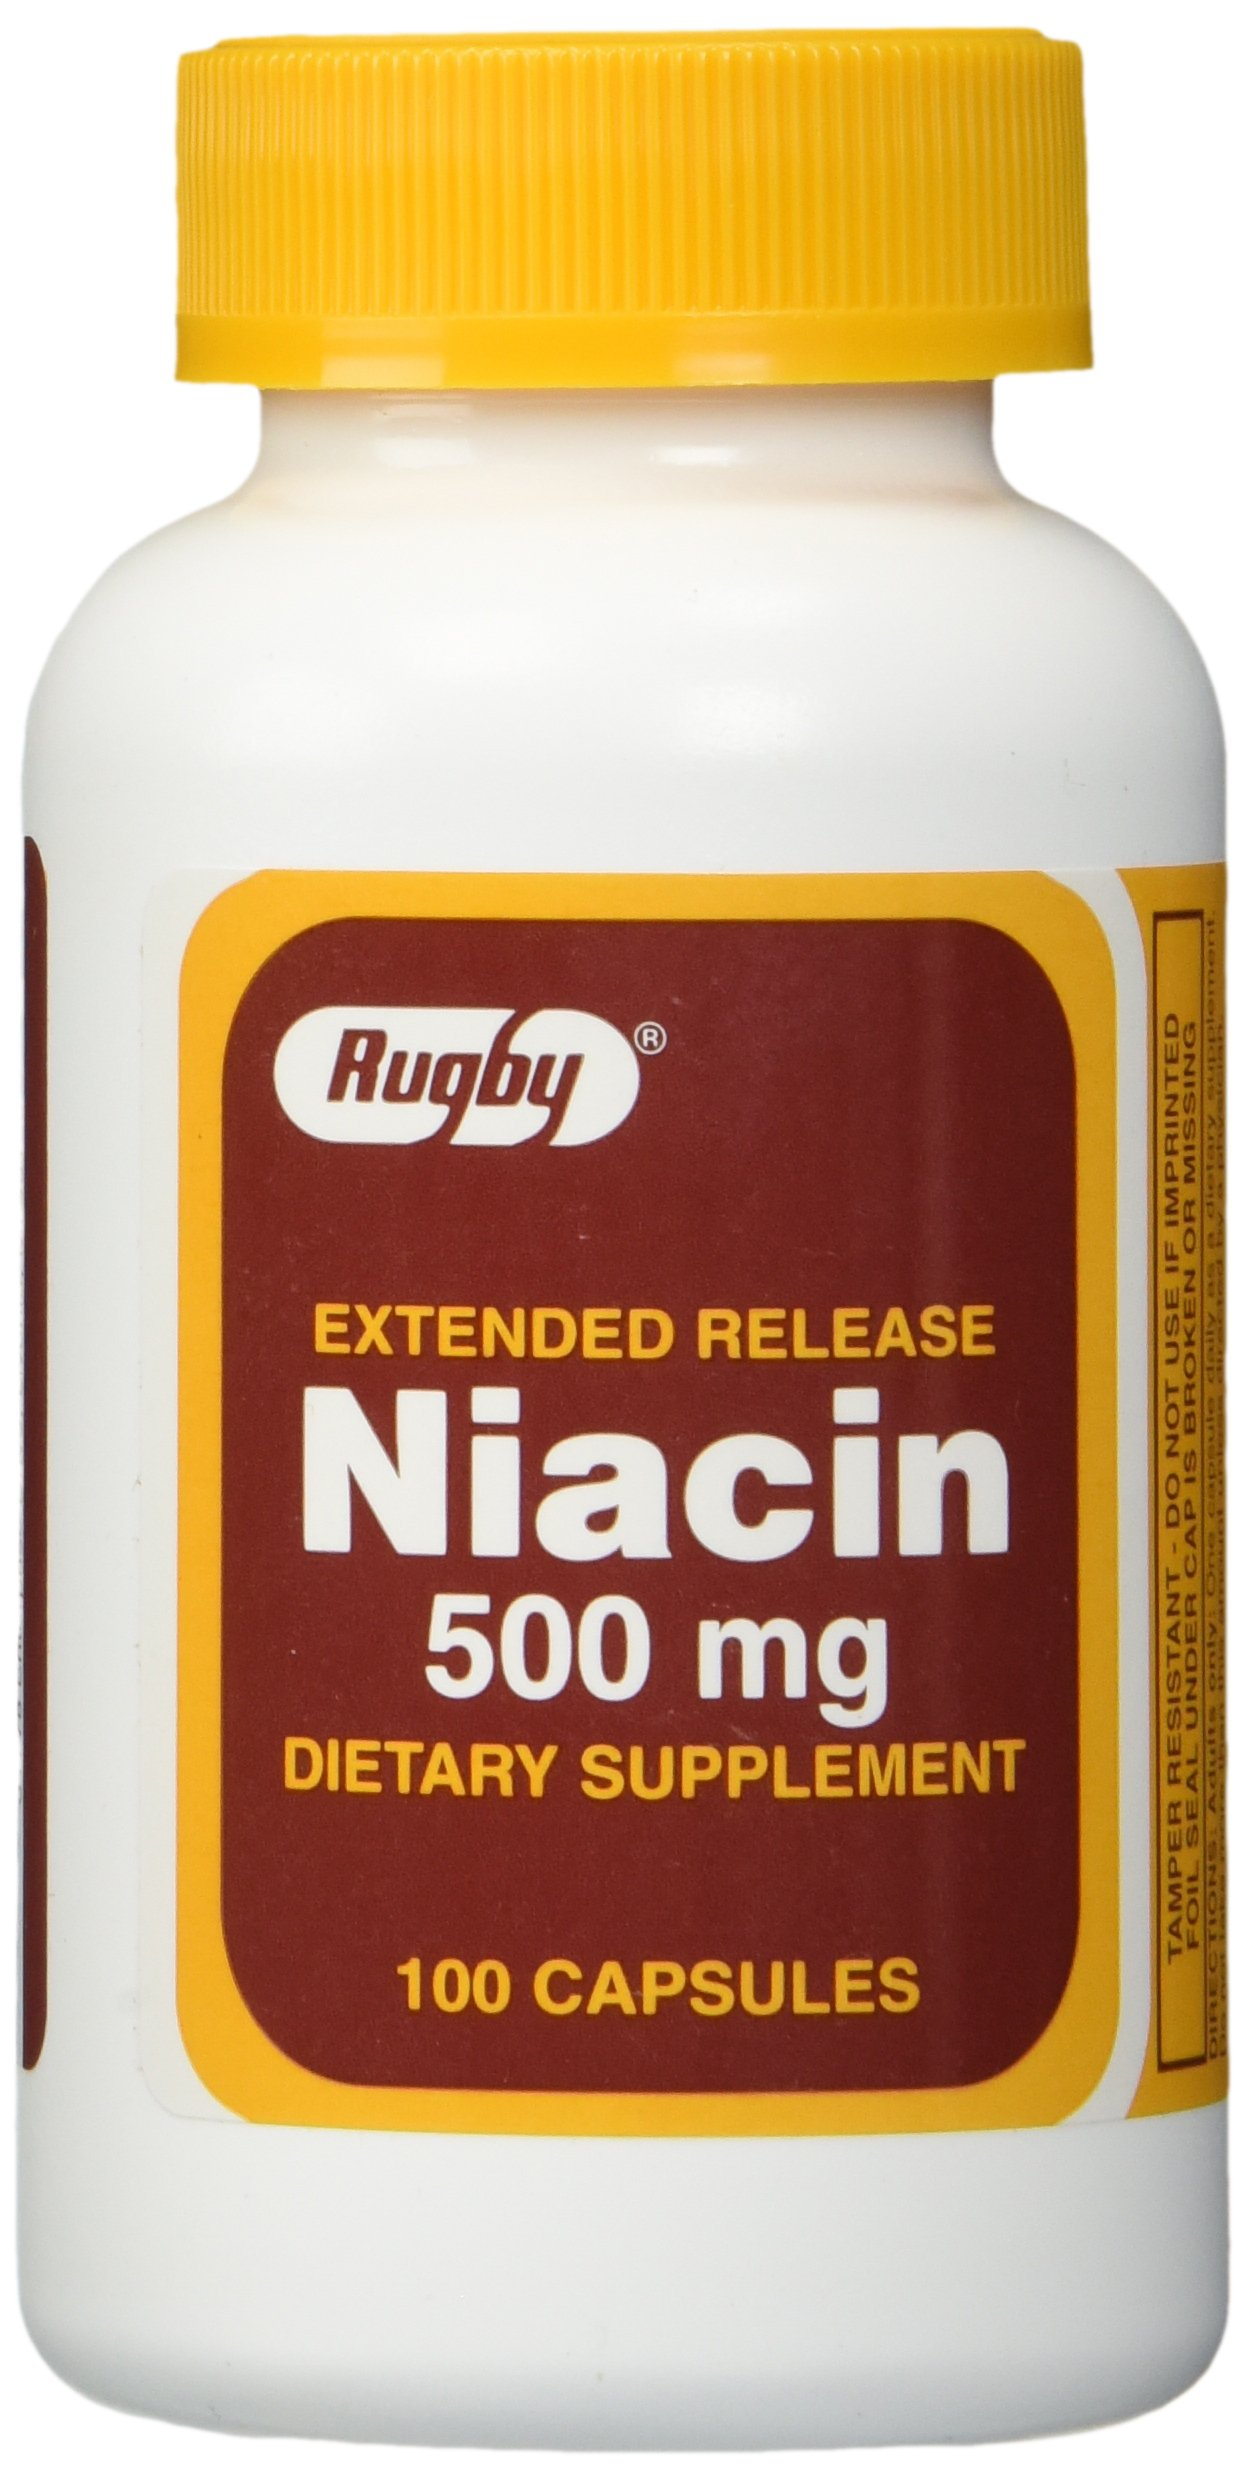 Rugby Extended Release Niacin 500mg Capsules - 3 Pack (3)